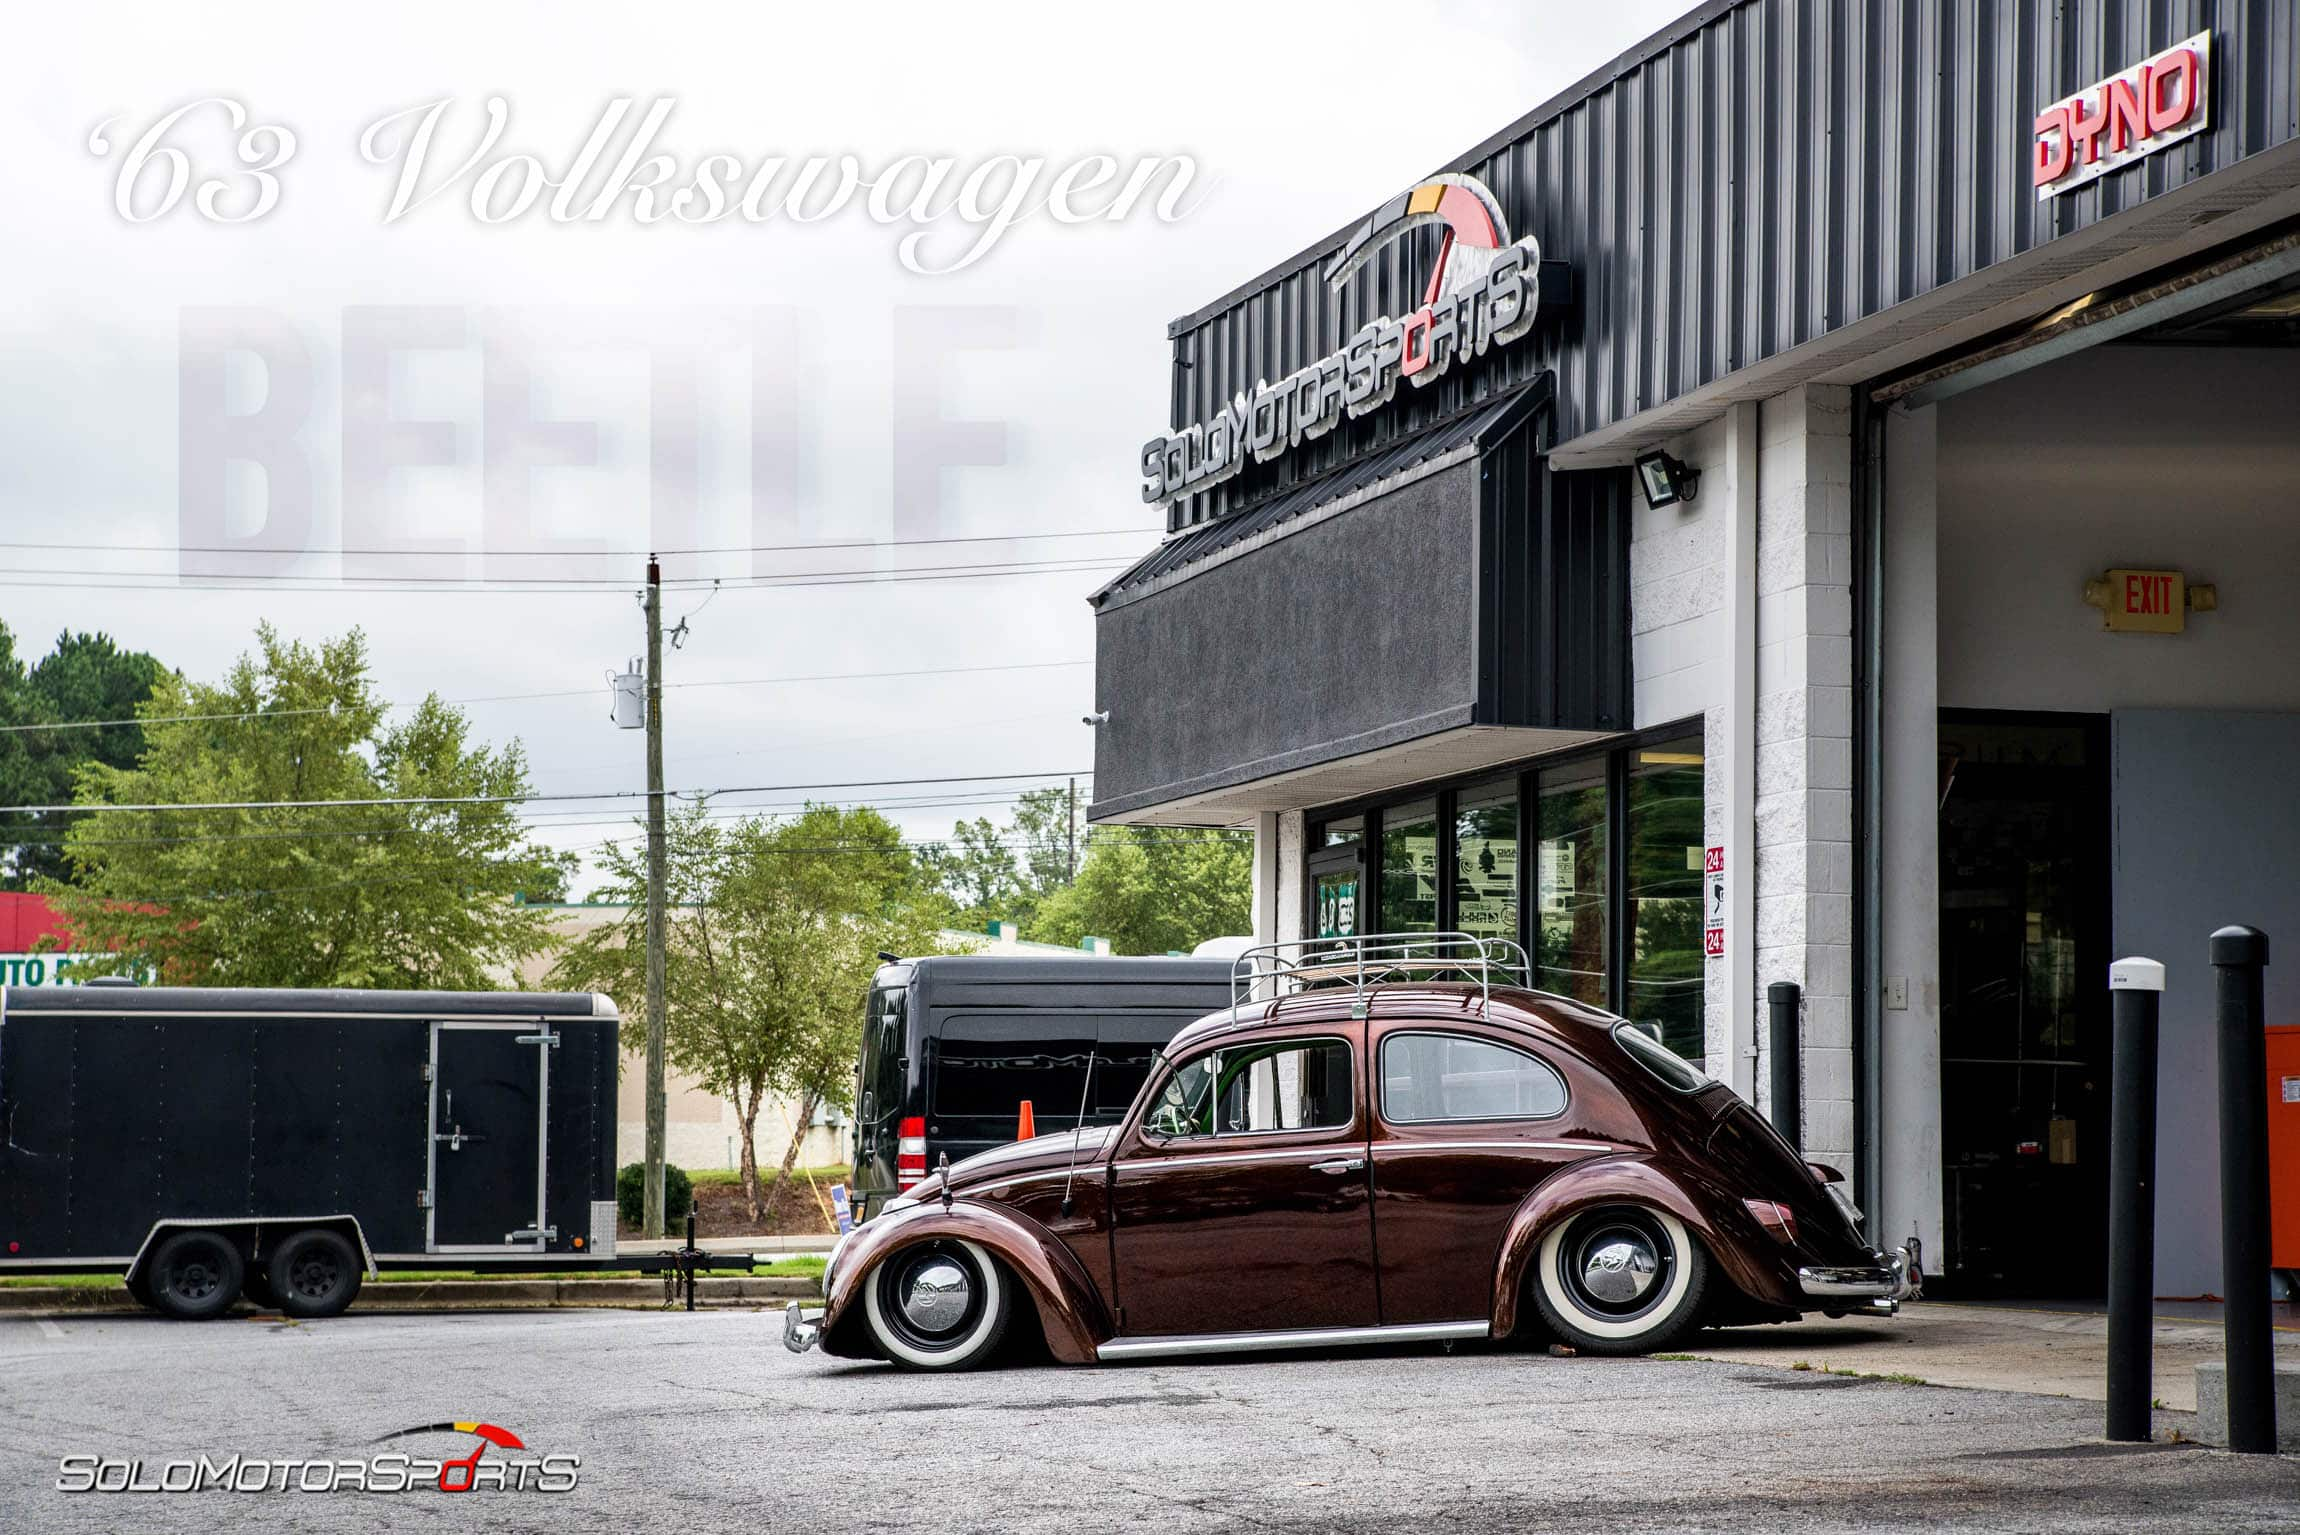 vw volkswagen vdub beetle bug aircooled finetune checked in service maintenance air-cooled finetune service tuning washing dust storage rare car